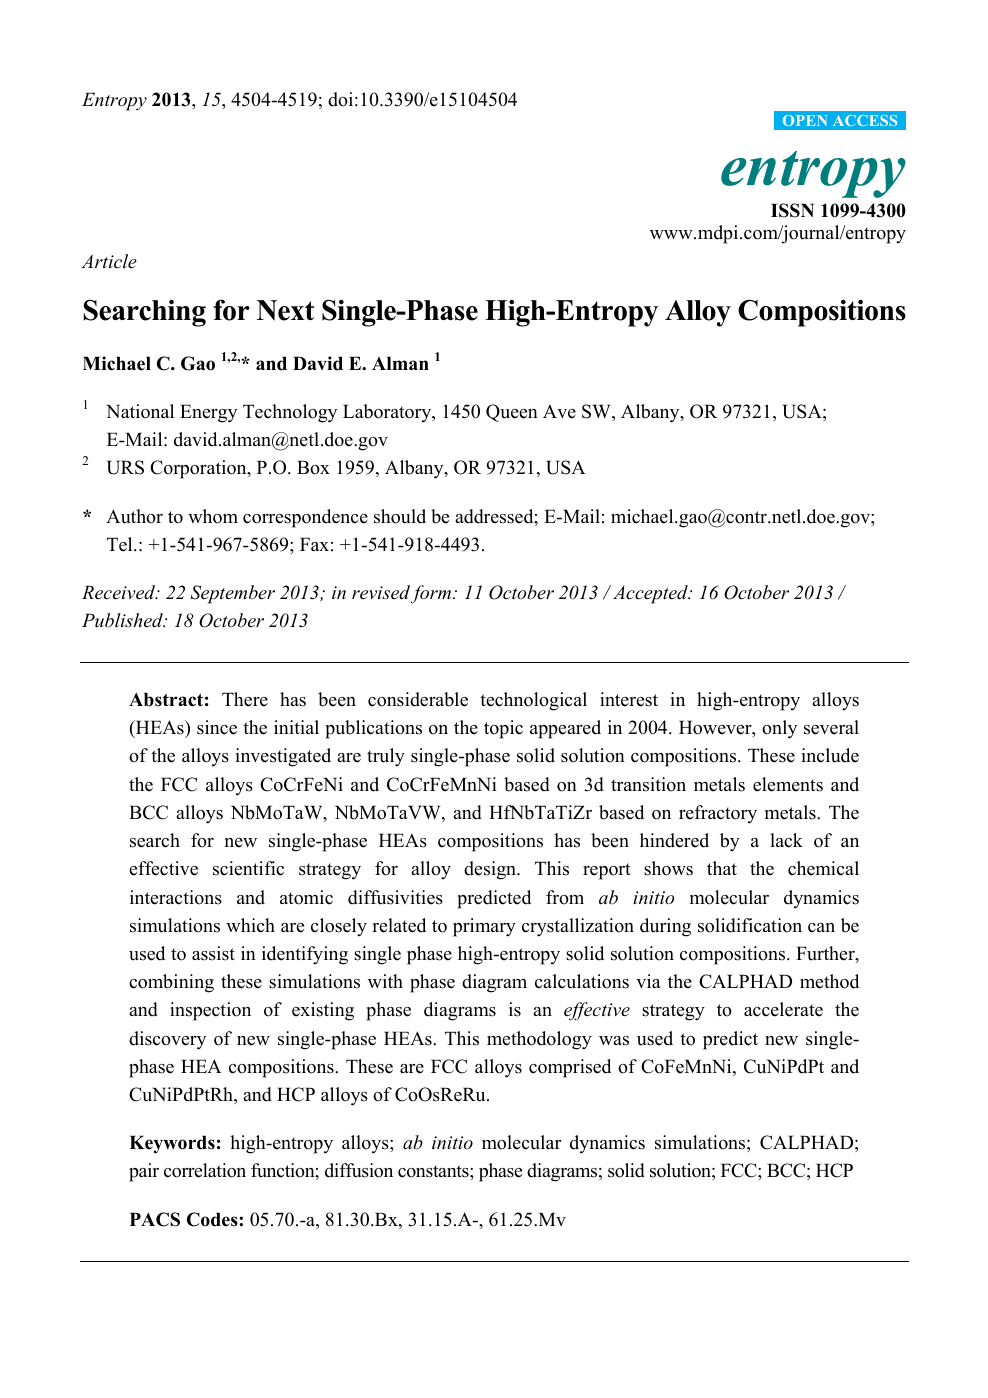 Searching for Next Single-Phase High-Entropy Alloy